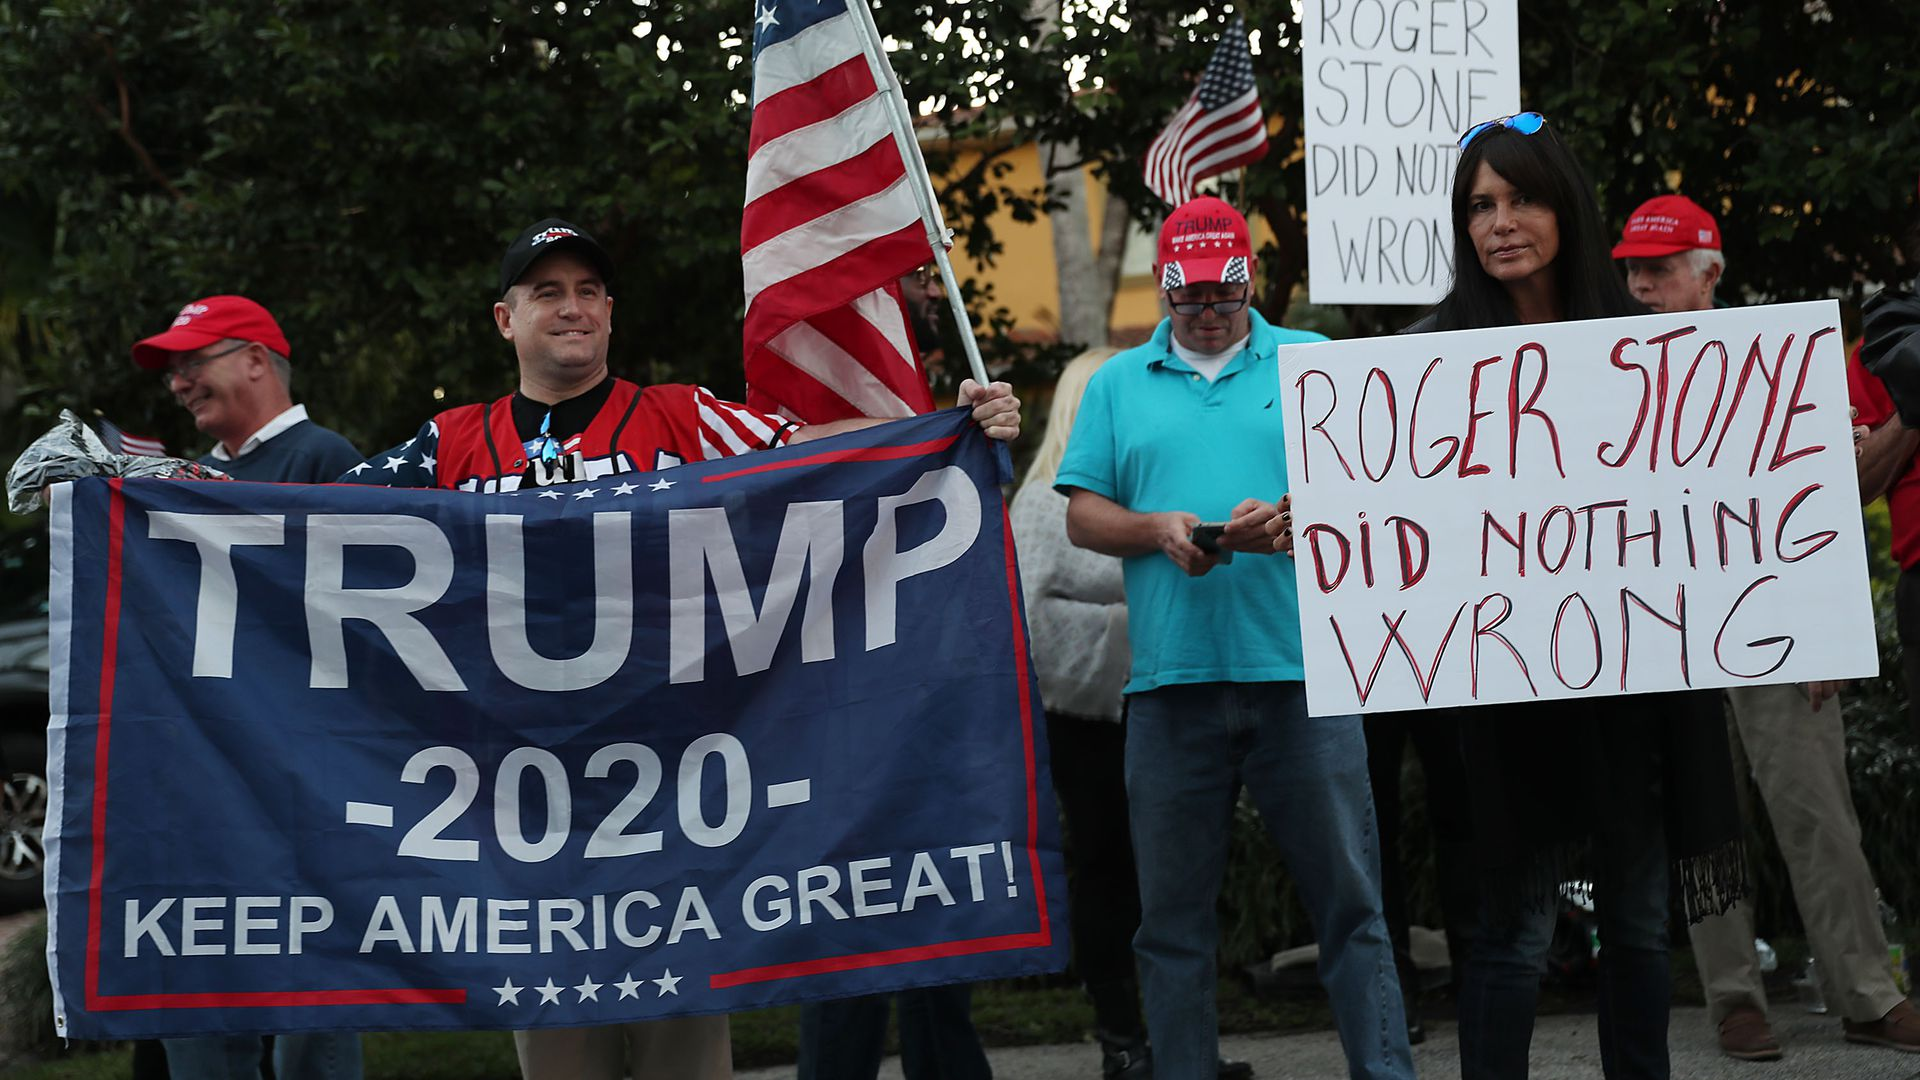 Trump rally for trump 2020